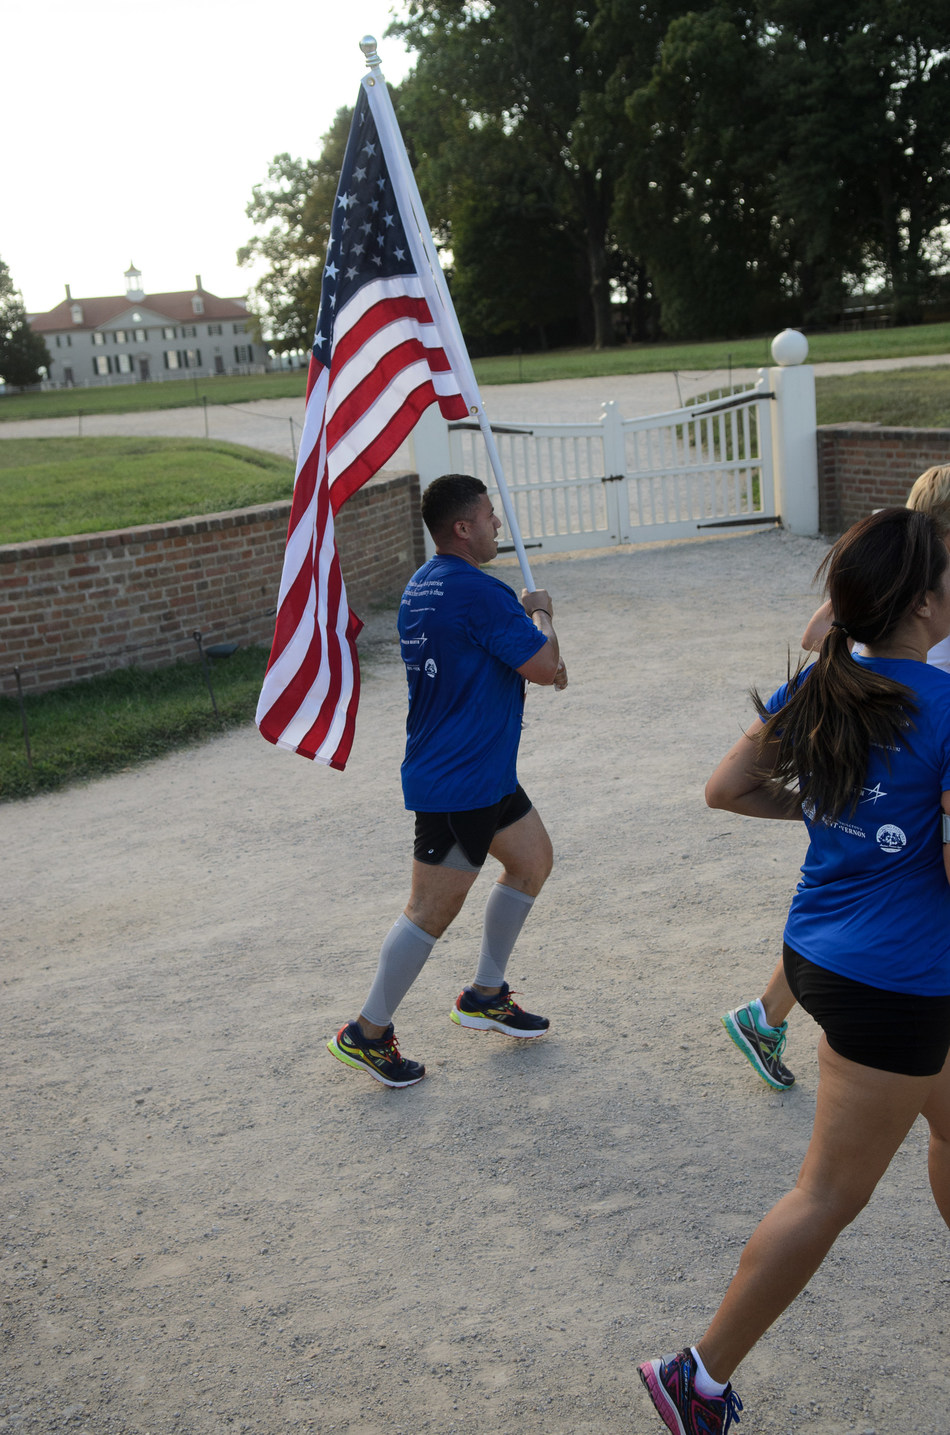 The George Washington Patriot Run finishes in Mount Vernon's historic area, steps away from the Mansion. Credit: Stephen Elliott.